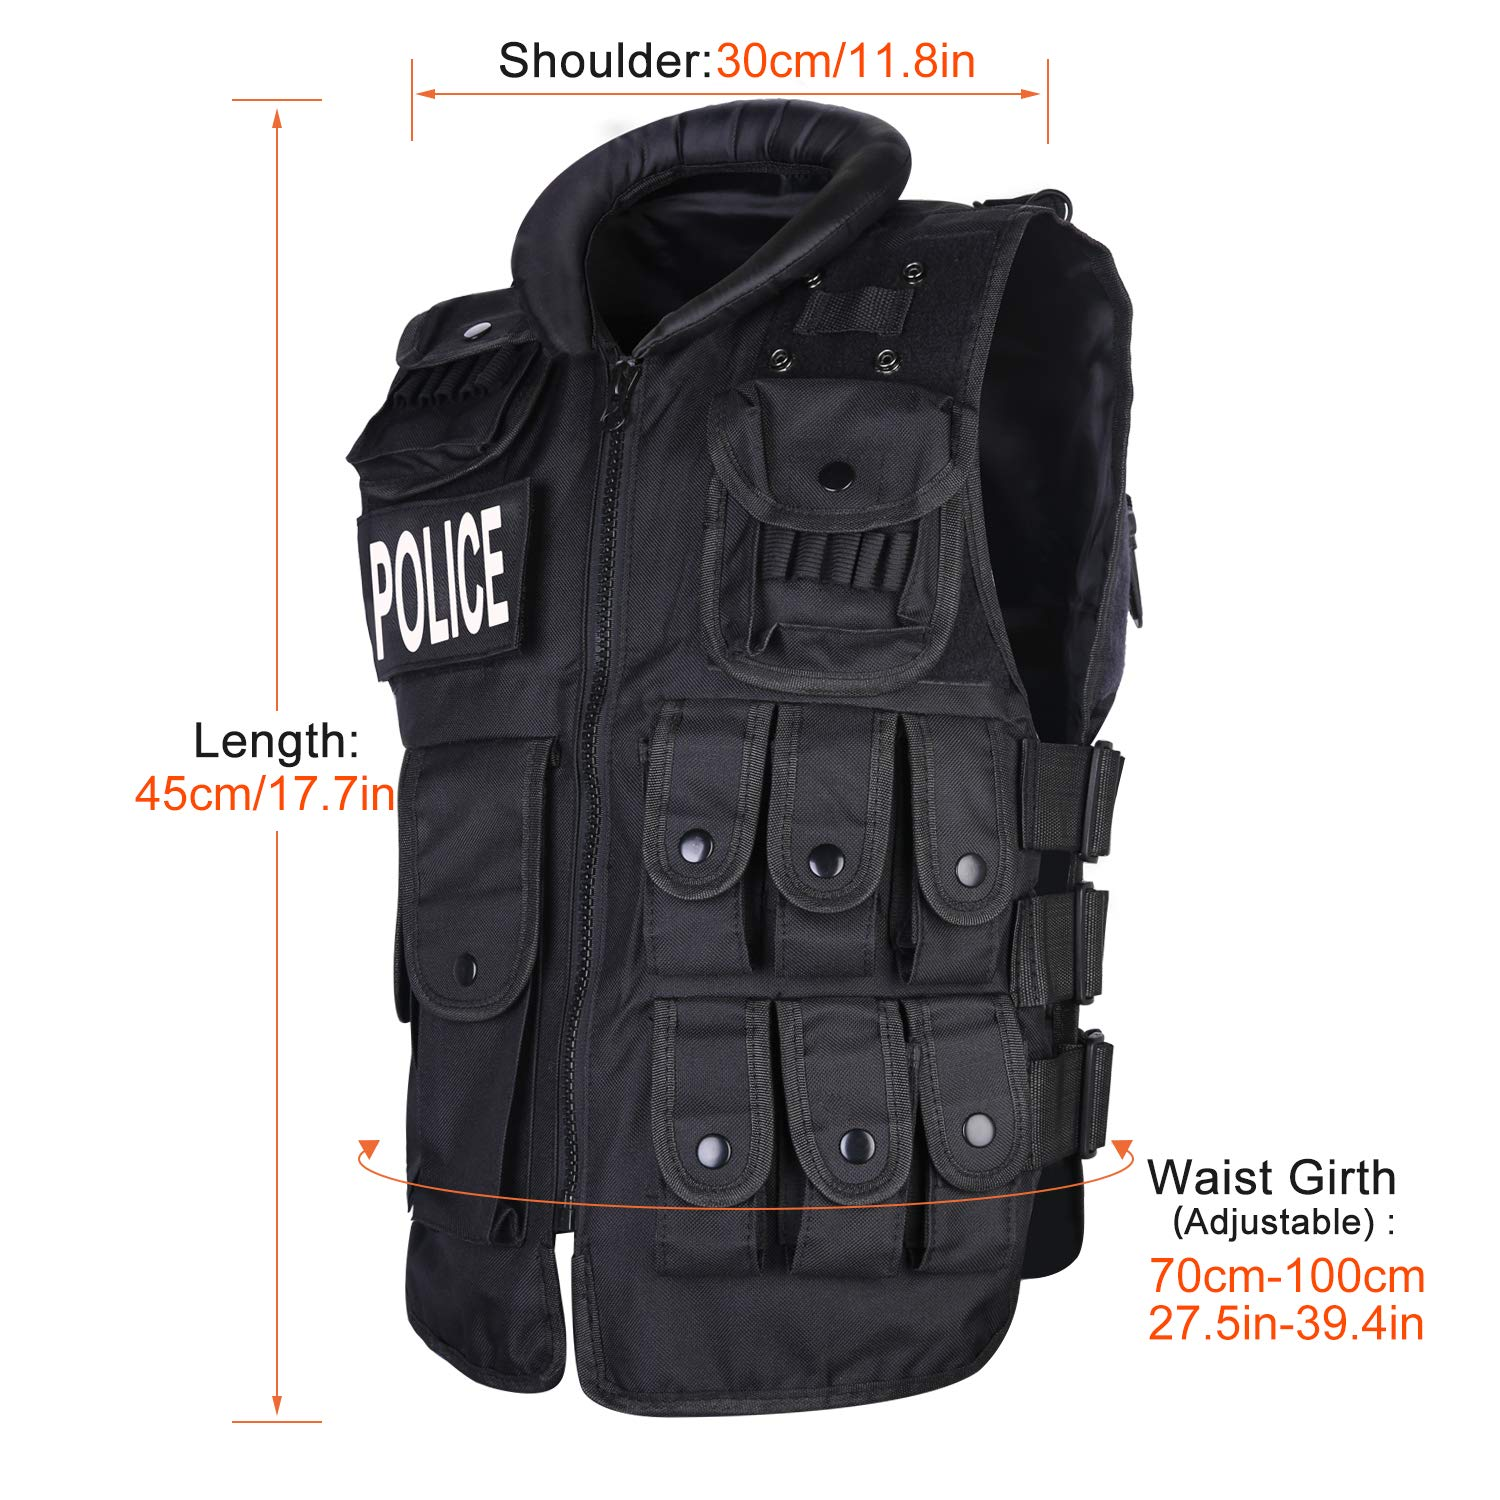 5dc3b63cb7b5d UNIQUEBELLA 600D Nylon SWAT / POLICE / FBI Airsoft CS Game/ Hunting  Military Combat vest/Traning Protective Security Vest For Adult,  Teenager(under 13 year ...